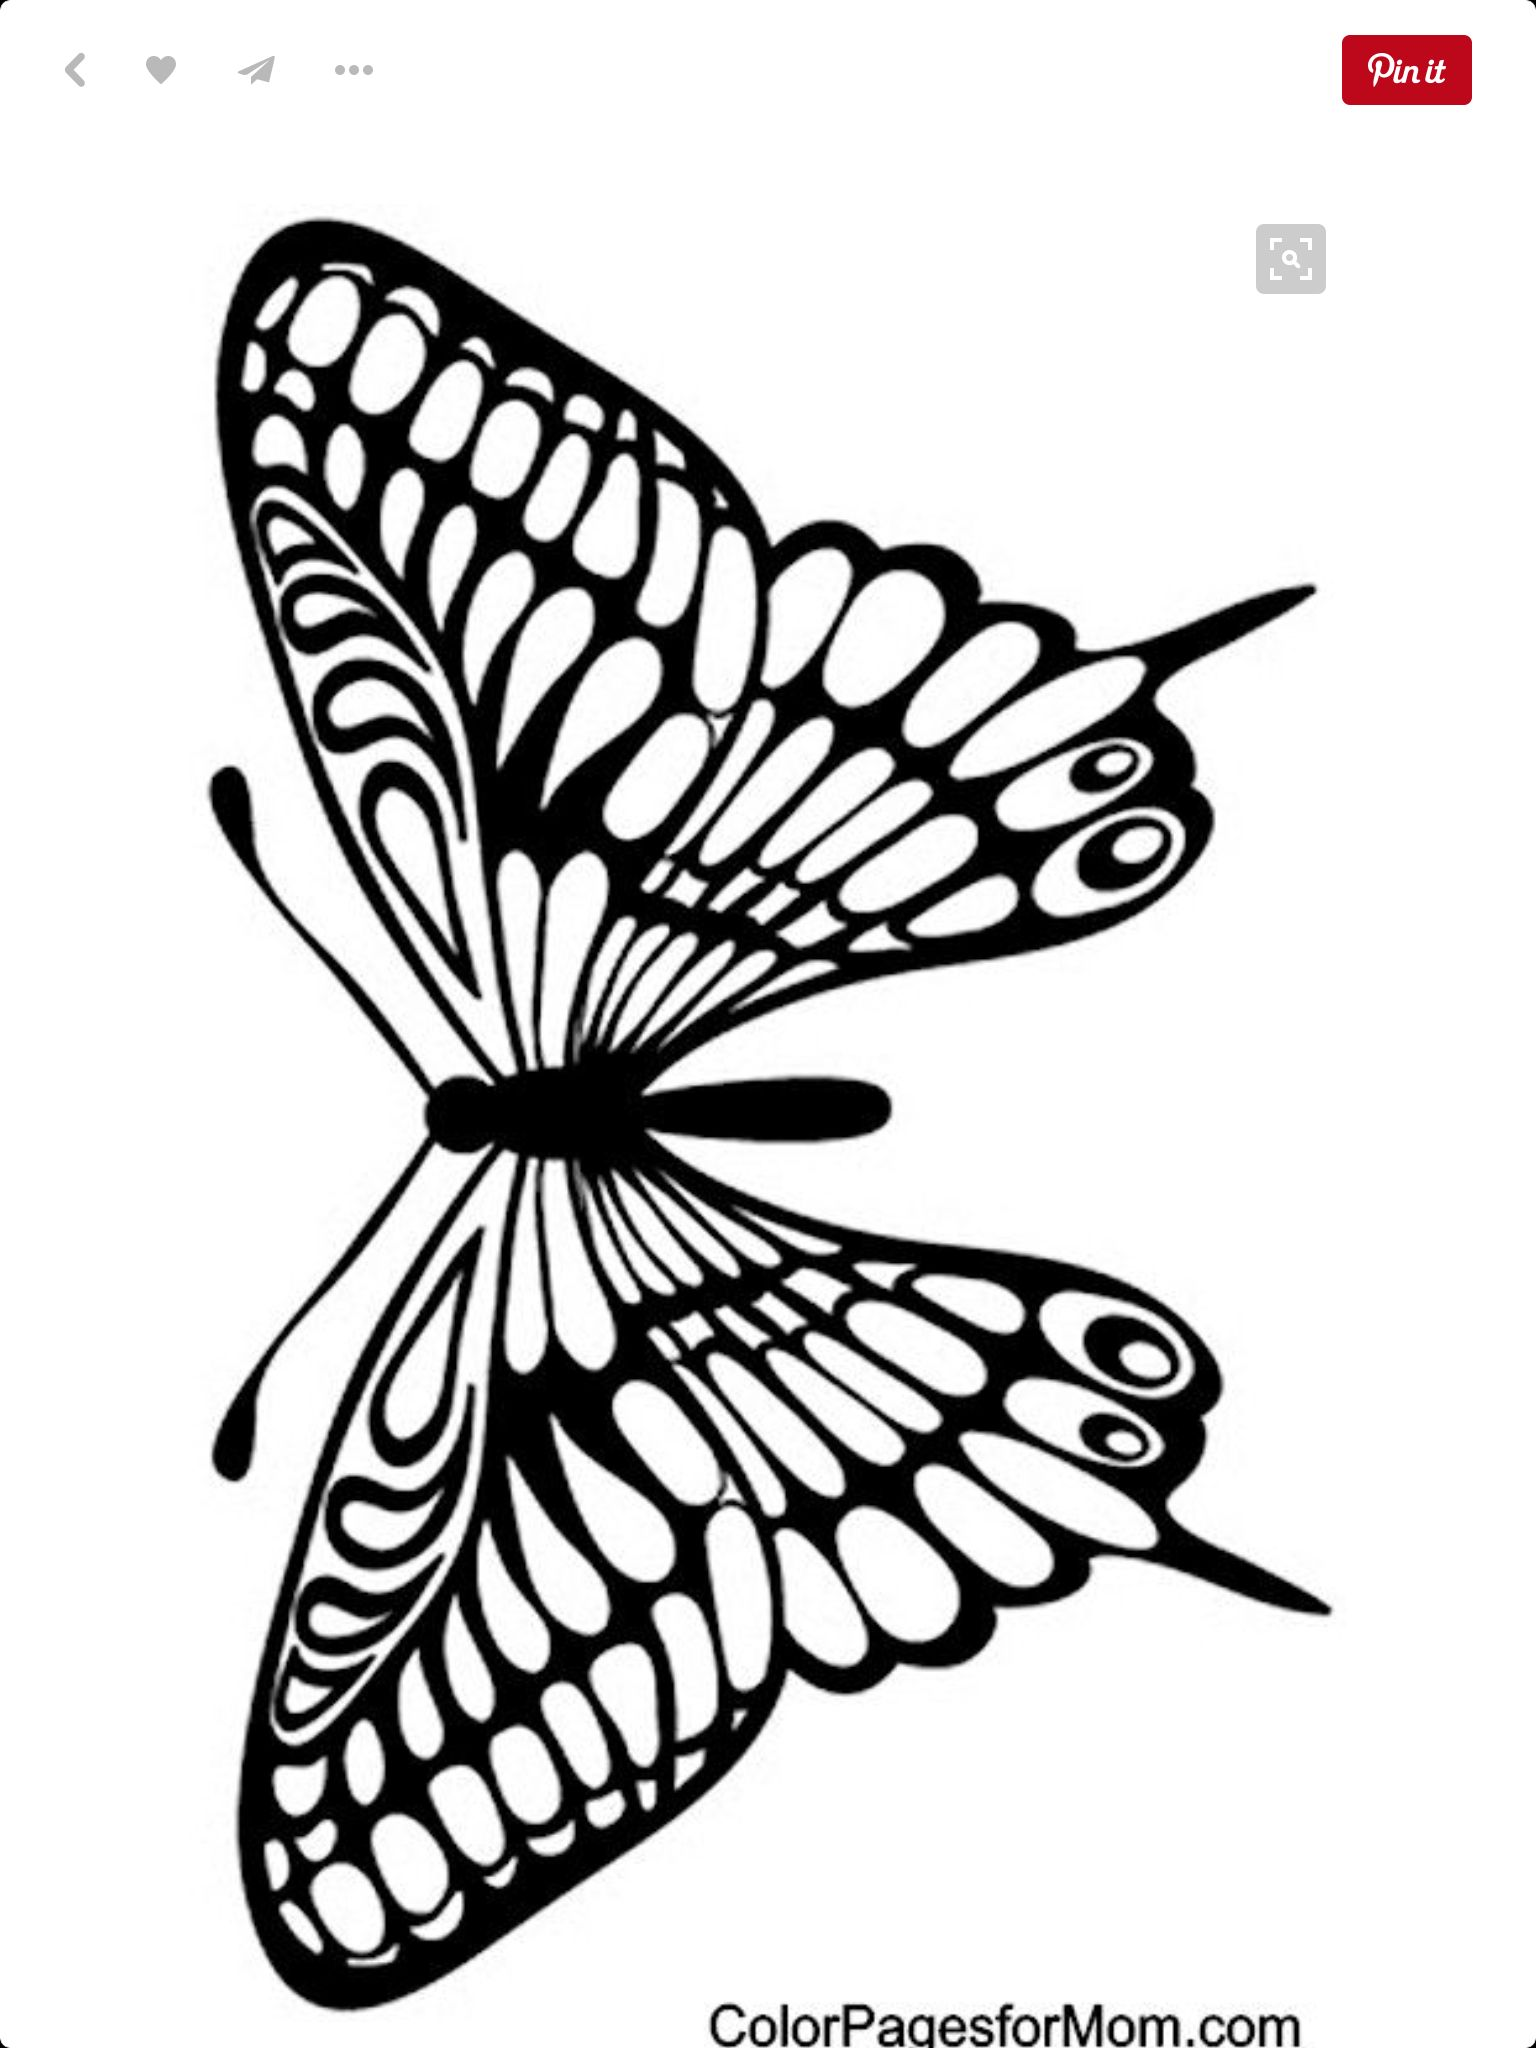 butterfly pattern (with images) | butterfly coloring page